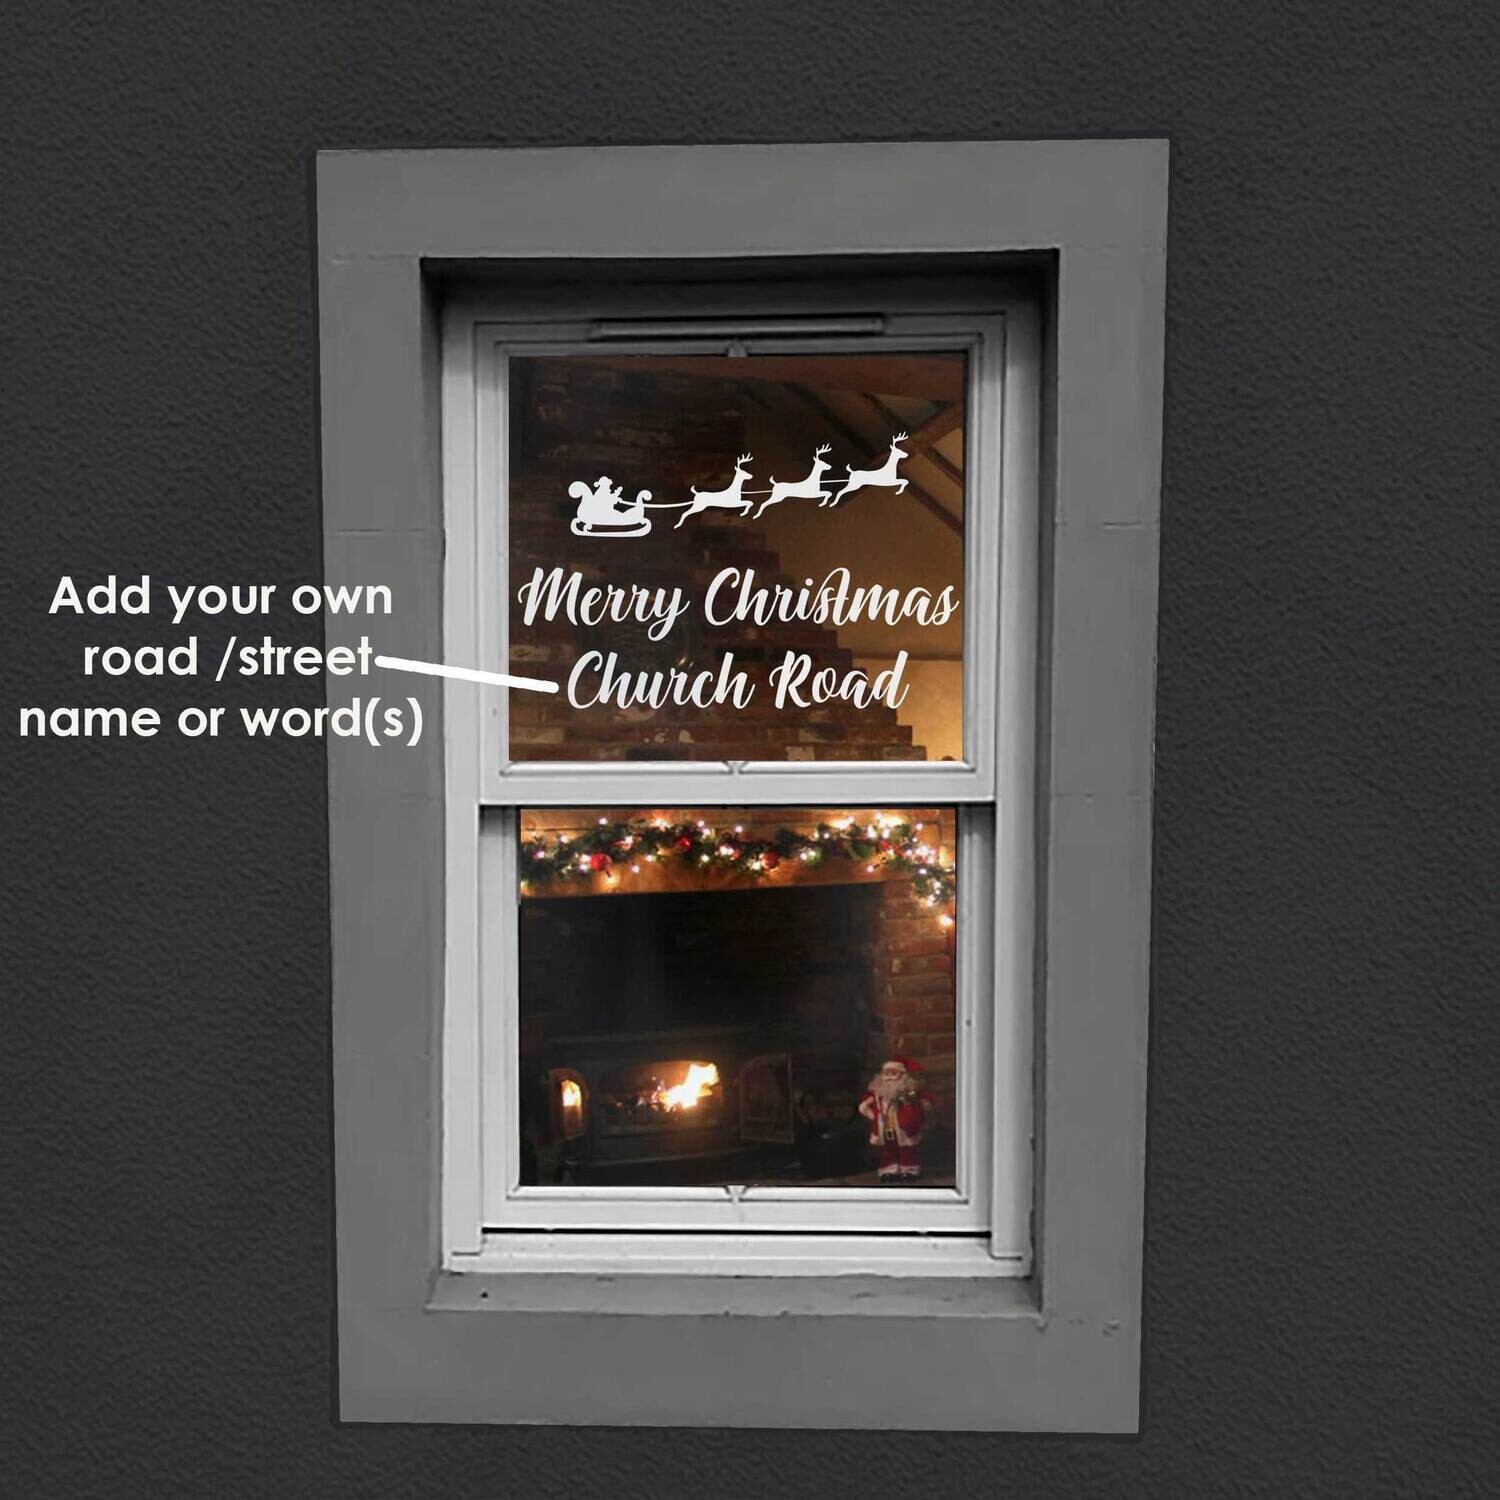 Merry Christmas Window Decal Sticker - Add Your Road or Street Name